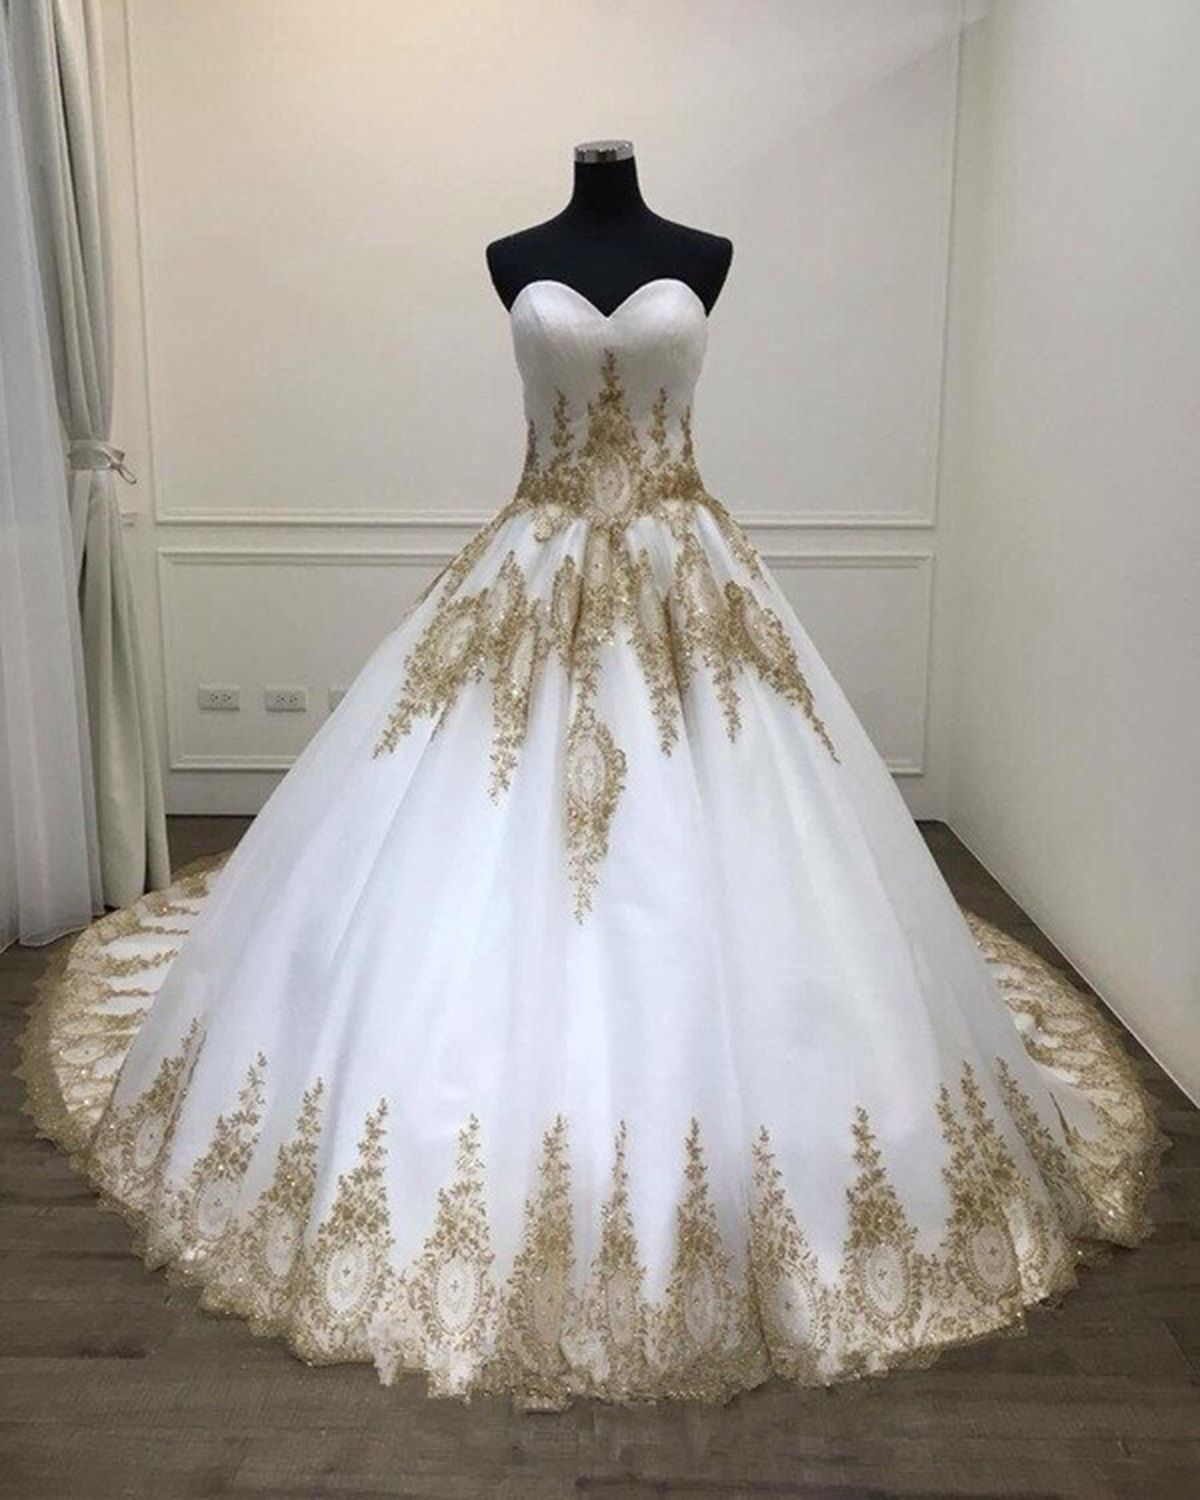 White Ball Gown Quinceanera Dresses Big Wedding Dress With Gold Appliques Puffy Sweetheart Prom Dresses P358 In 2021 White Ball Gowns Gowns Ball Gowns [ 1500 x 1200 Pixel ]